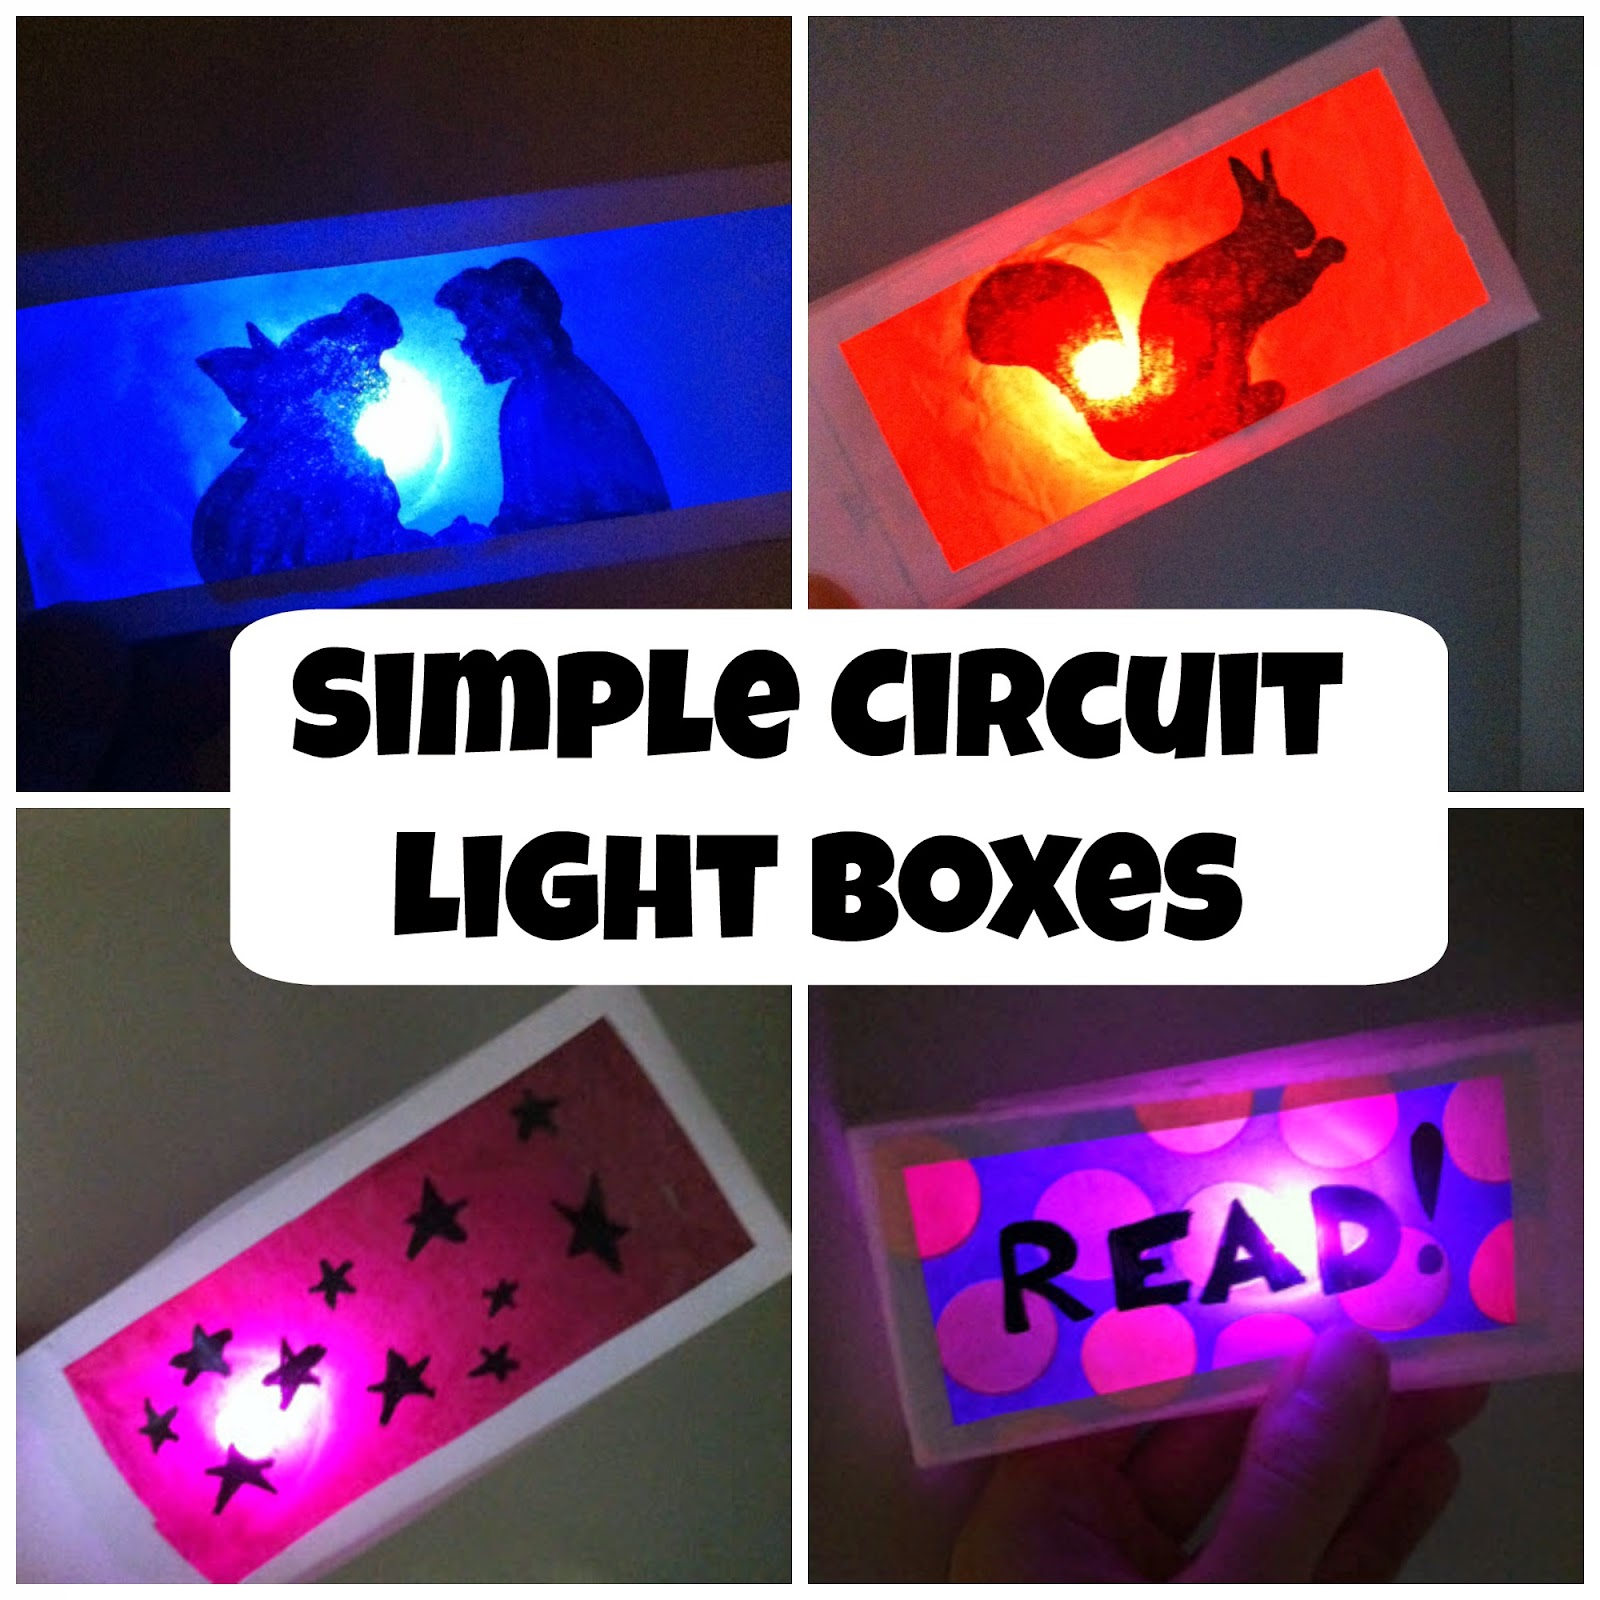 Teen Blog Frvpld Make A Simple Circuit Light Box During Tech How To Week